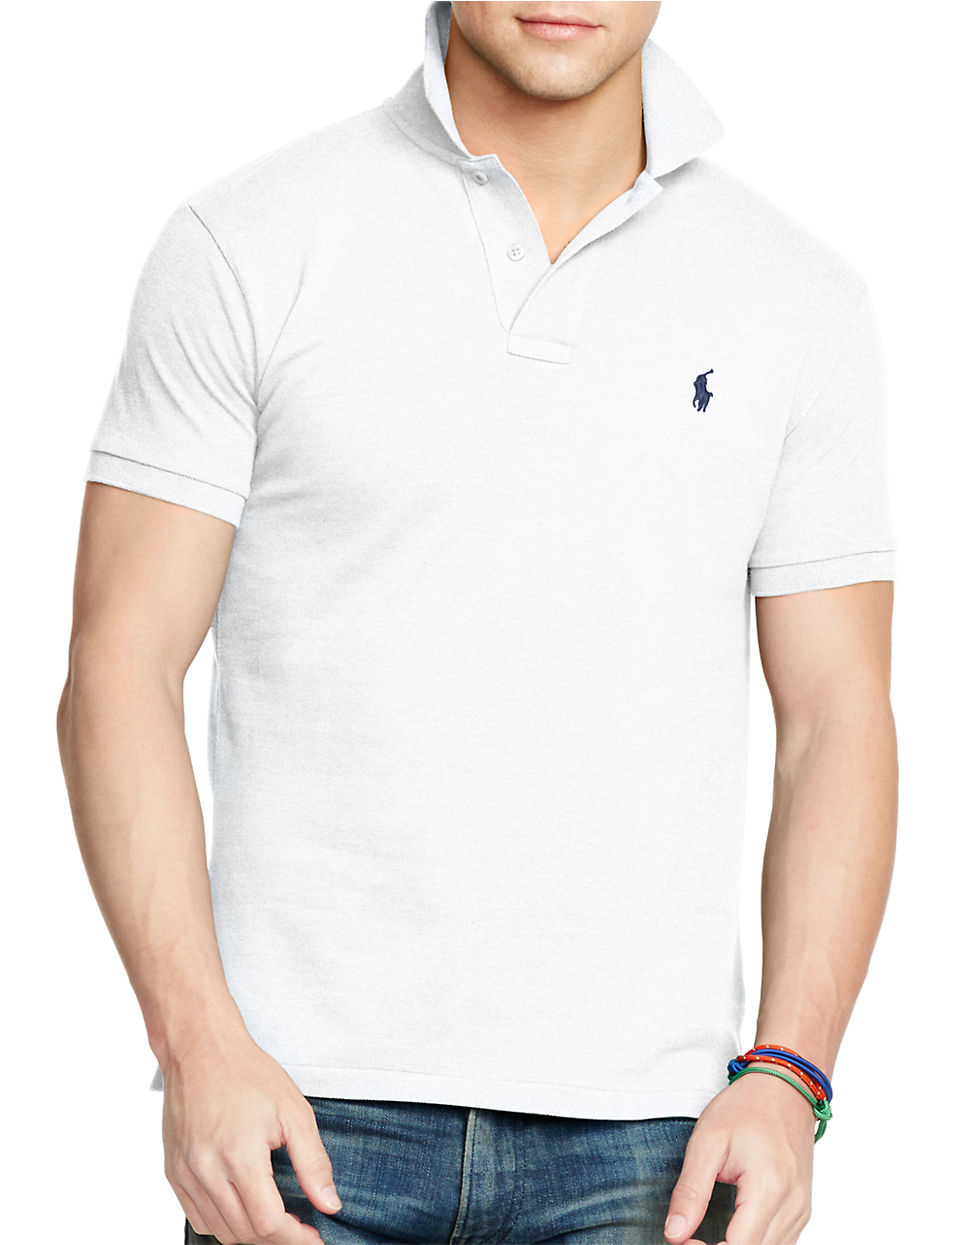 polo ralph lauren slim fit polo in white for men lyst. Black Bedroom Furniture Sets. Home Design Ideas